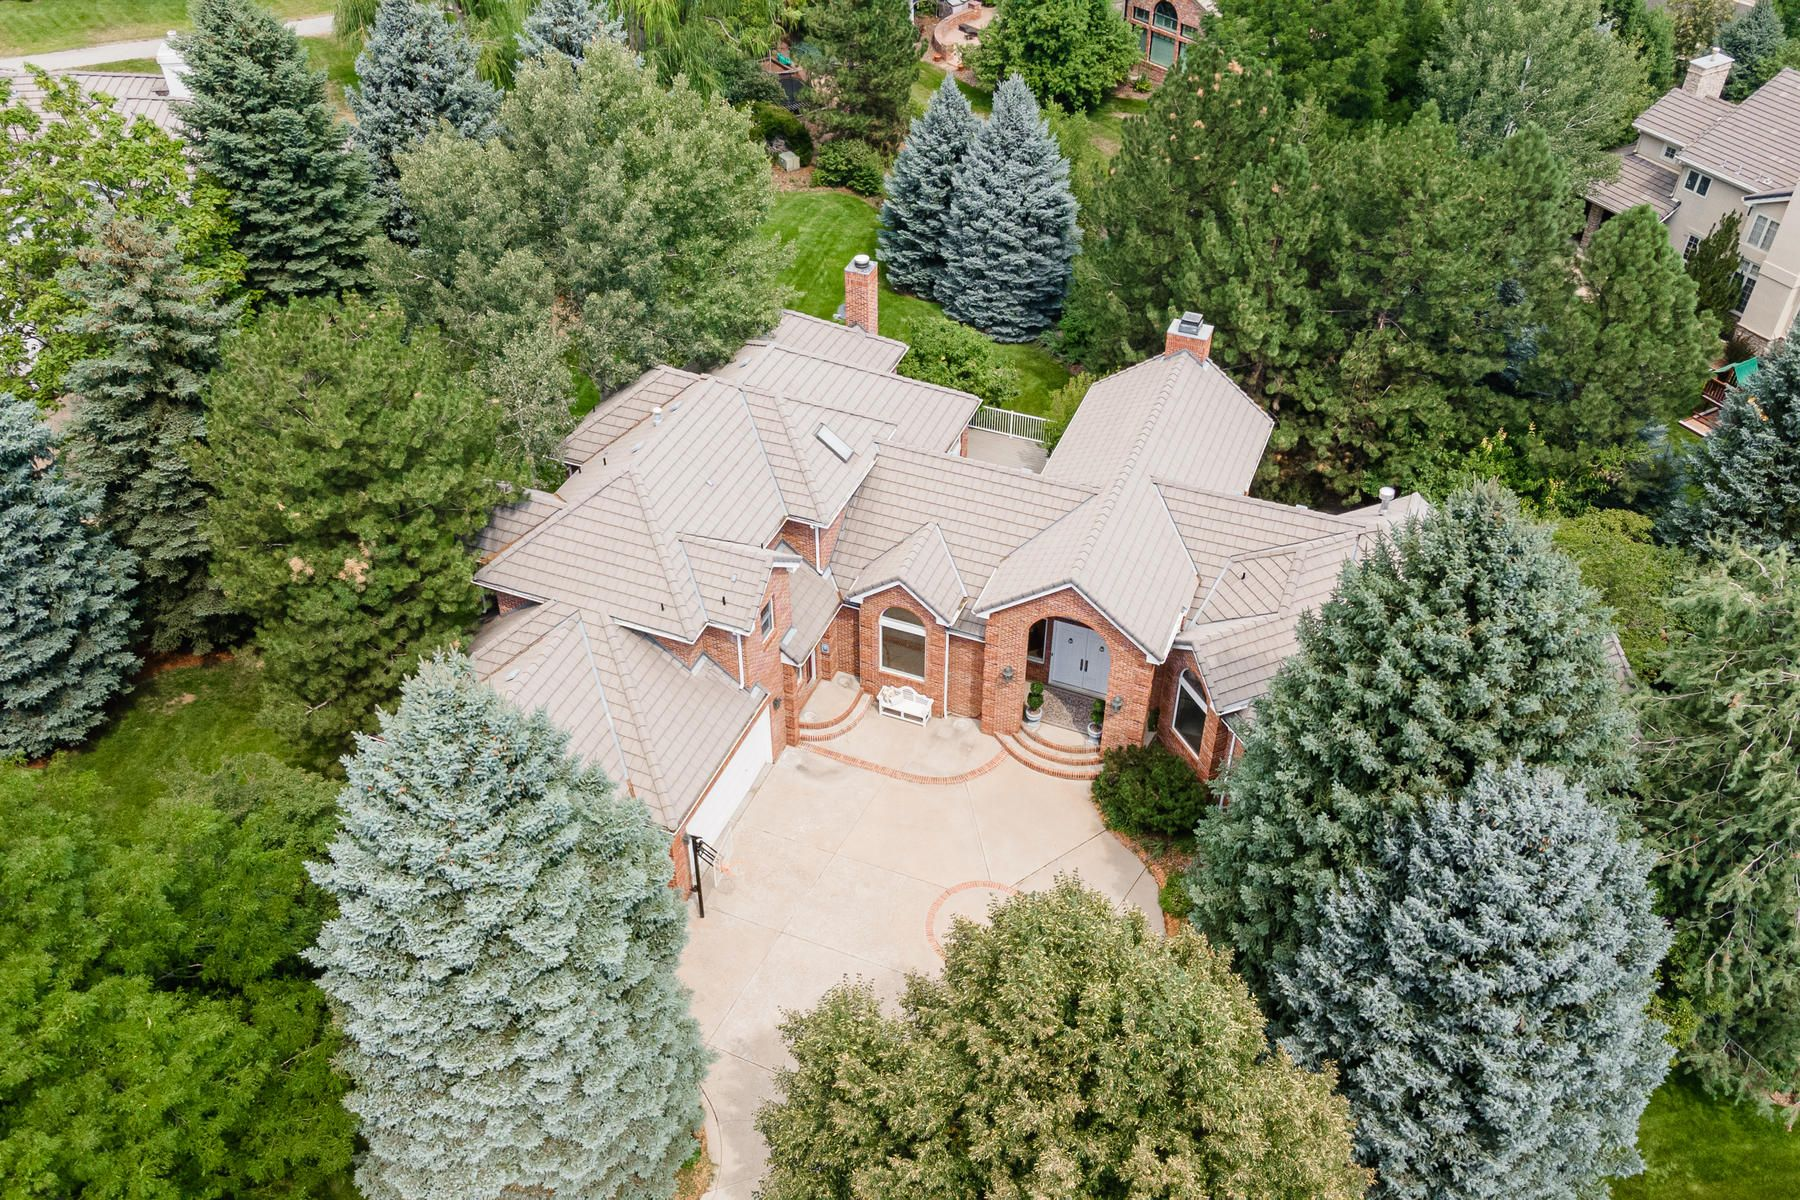 Single Family Homes for Active at 5151 Olive Court, Greenwood Village, Co, 80121 5151 Olive Court Greenwood Village, Colorado 80121 United States